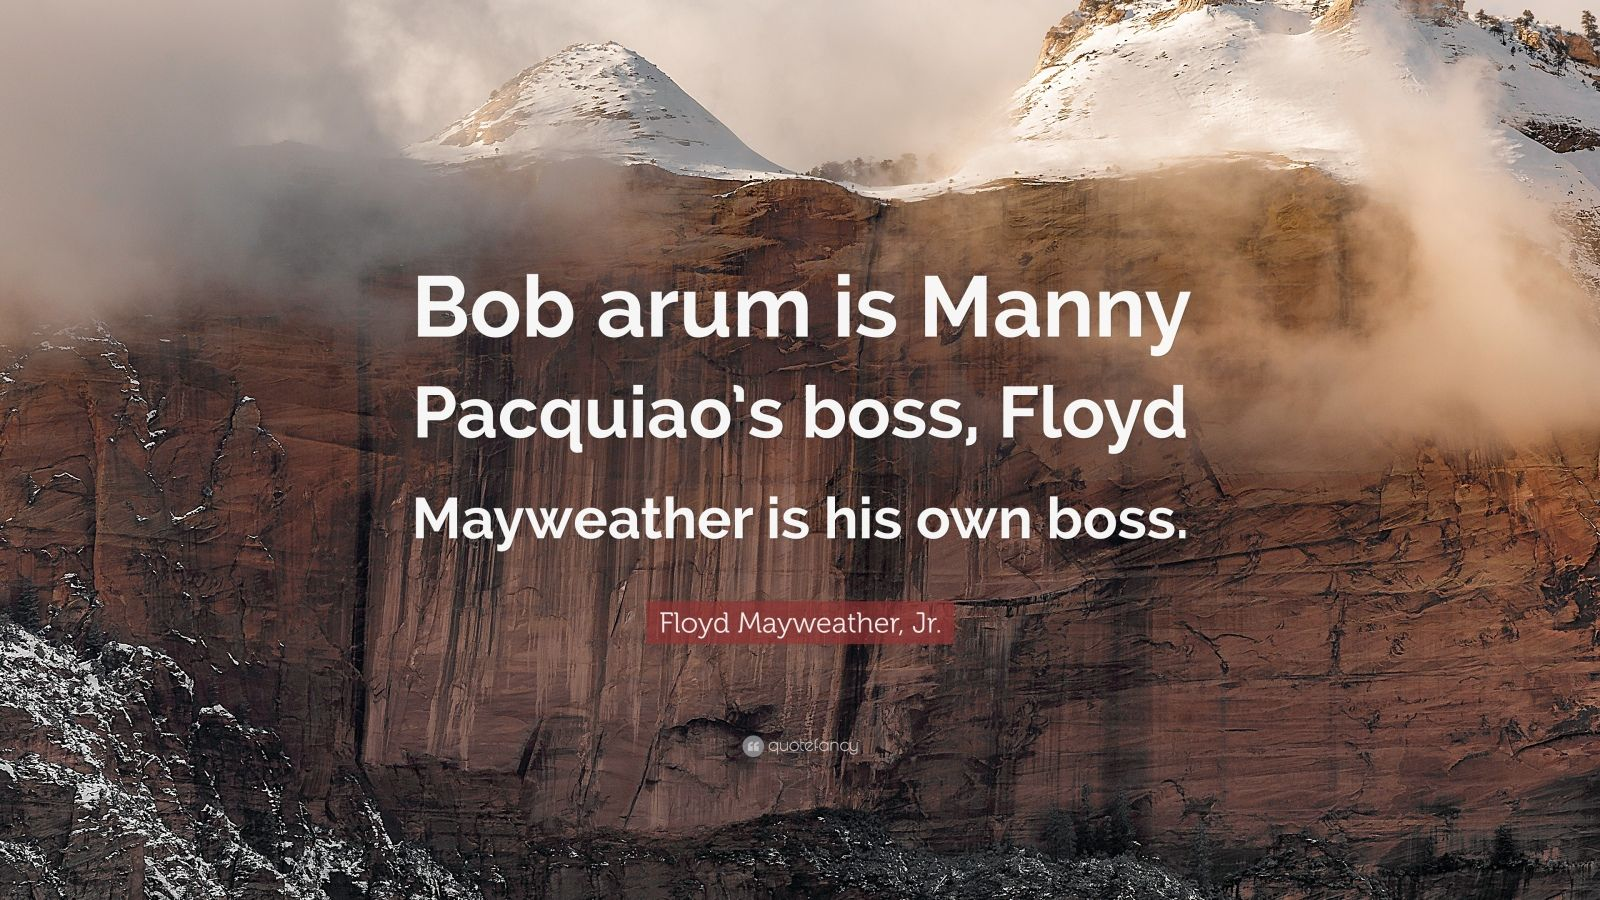 """Floyd Mayweather, Jr. Quote: """"Bob arum is Manny Pacquiao's boss, Floyd Mayweather is his own boss."""""""